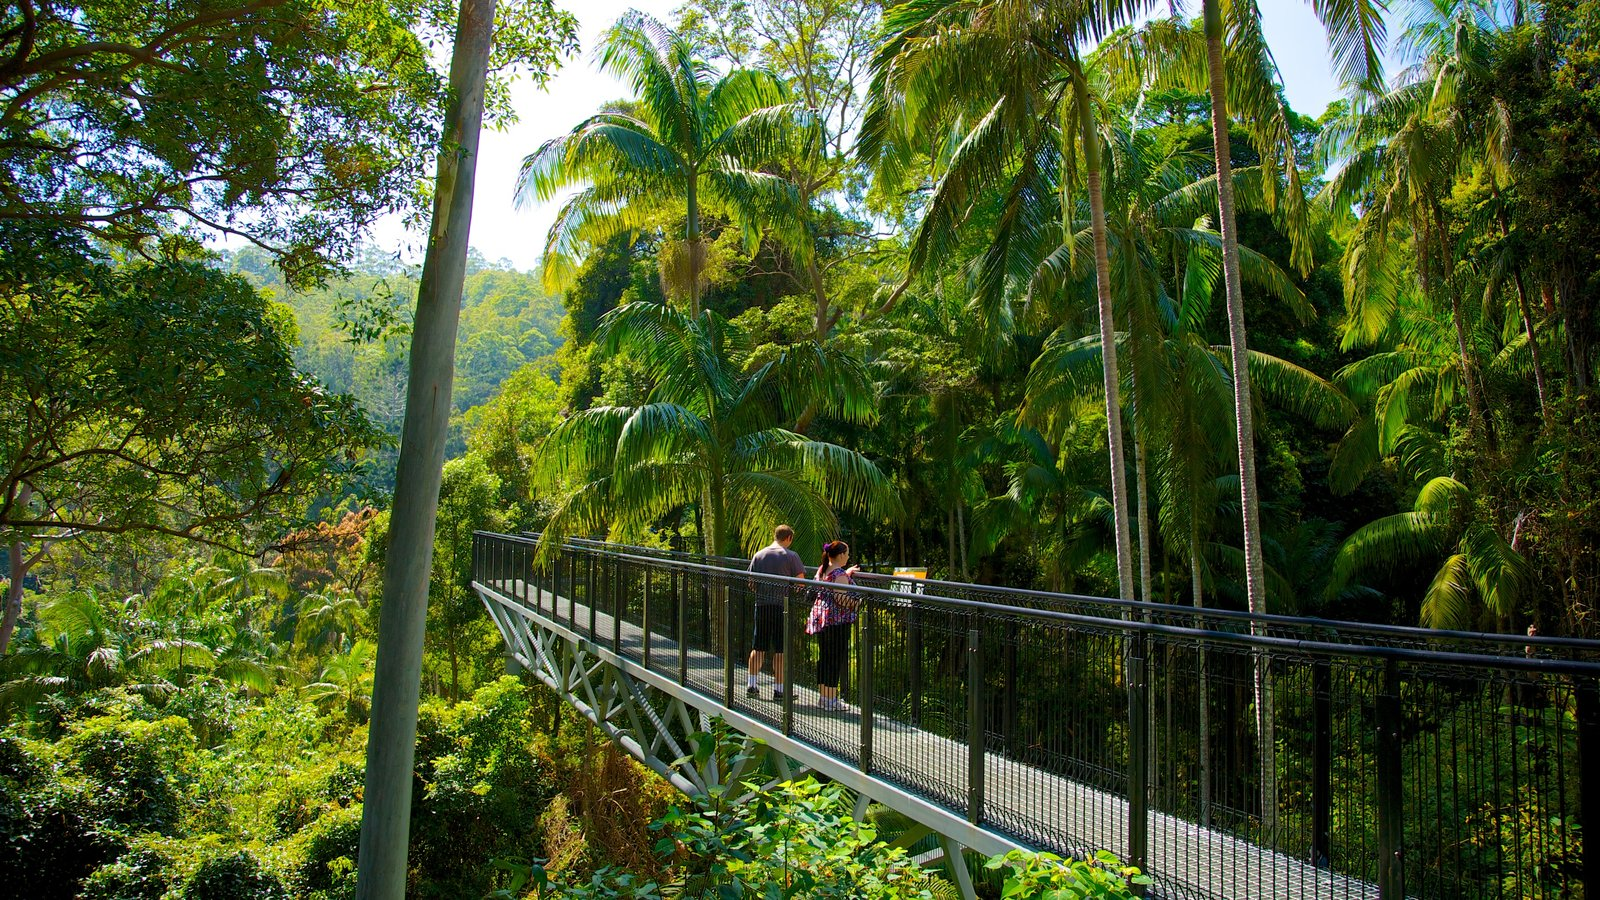 Mount Tamborine which includes tropical scenes, forest scenes and hiking or walking